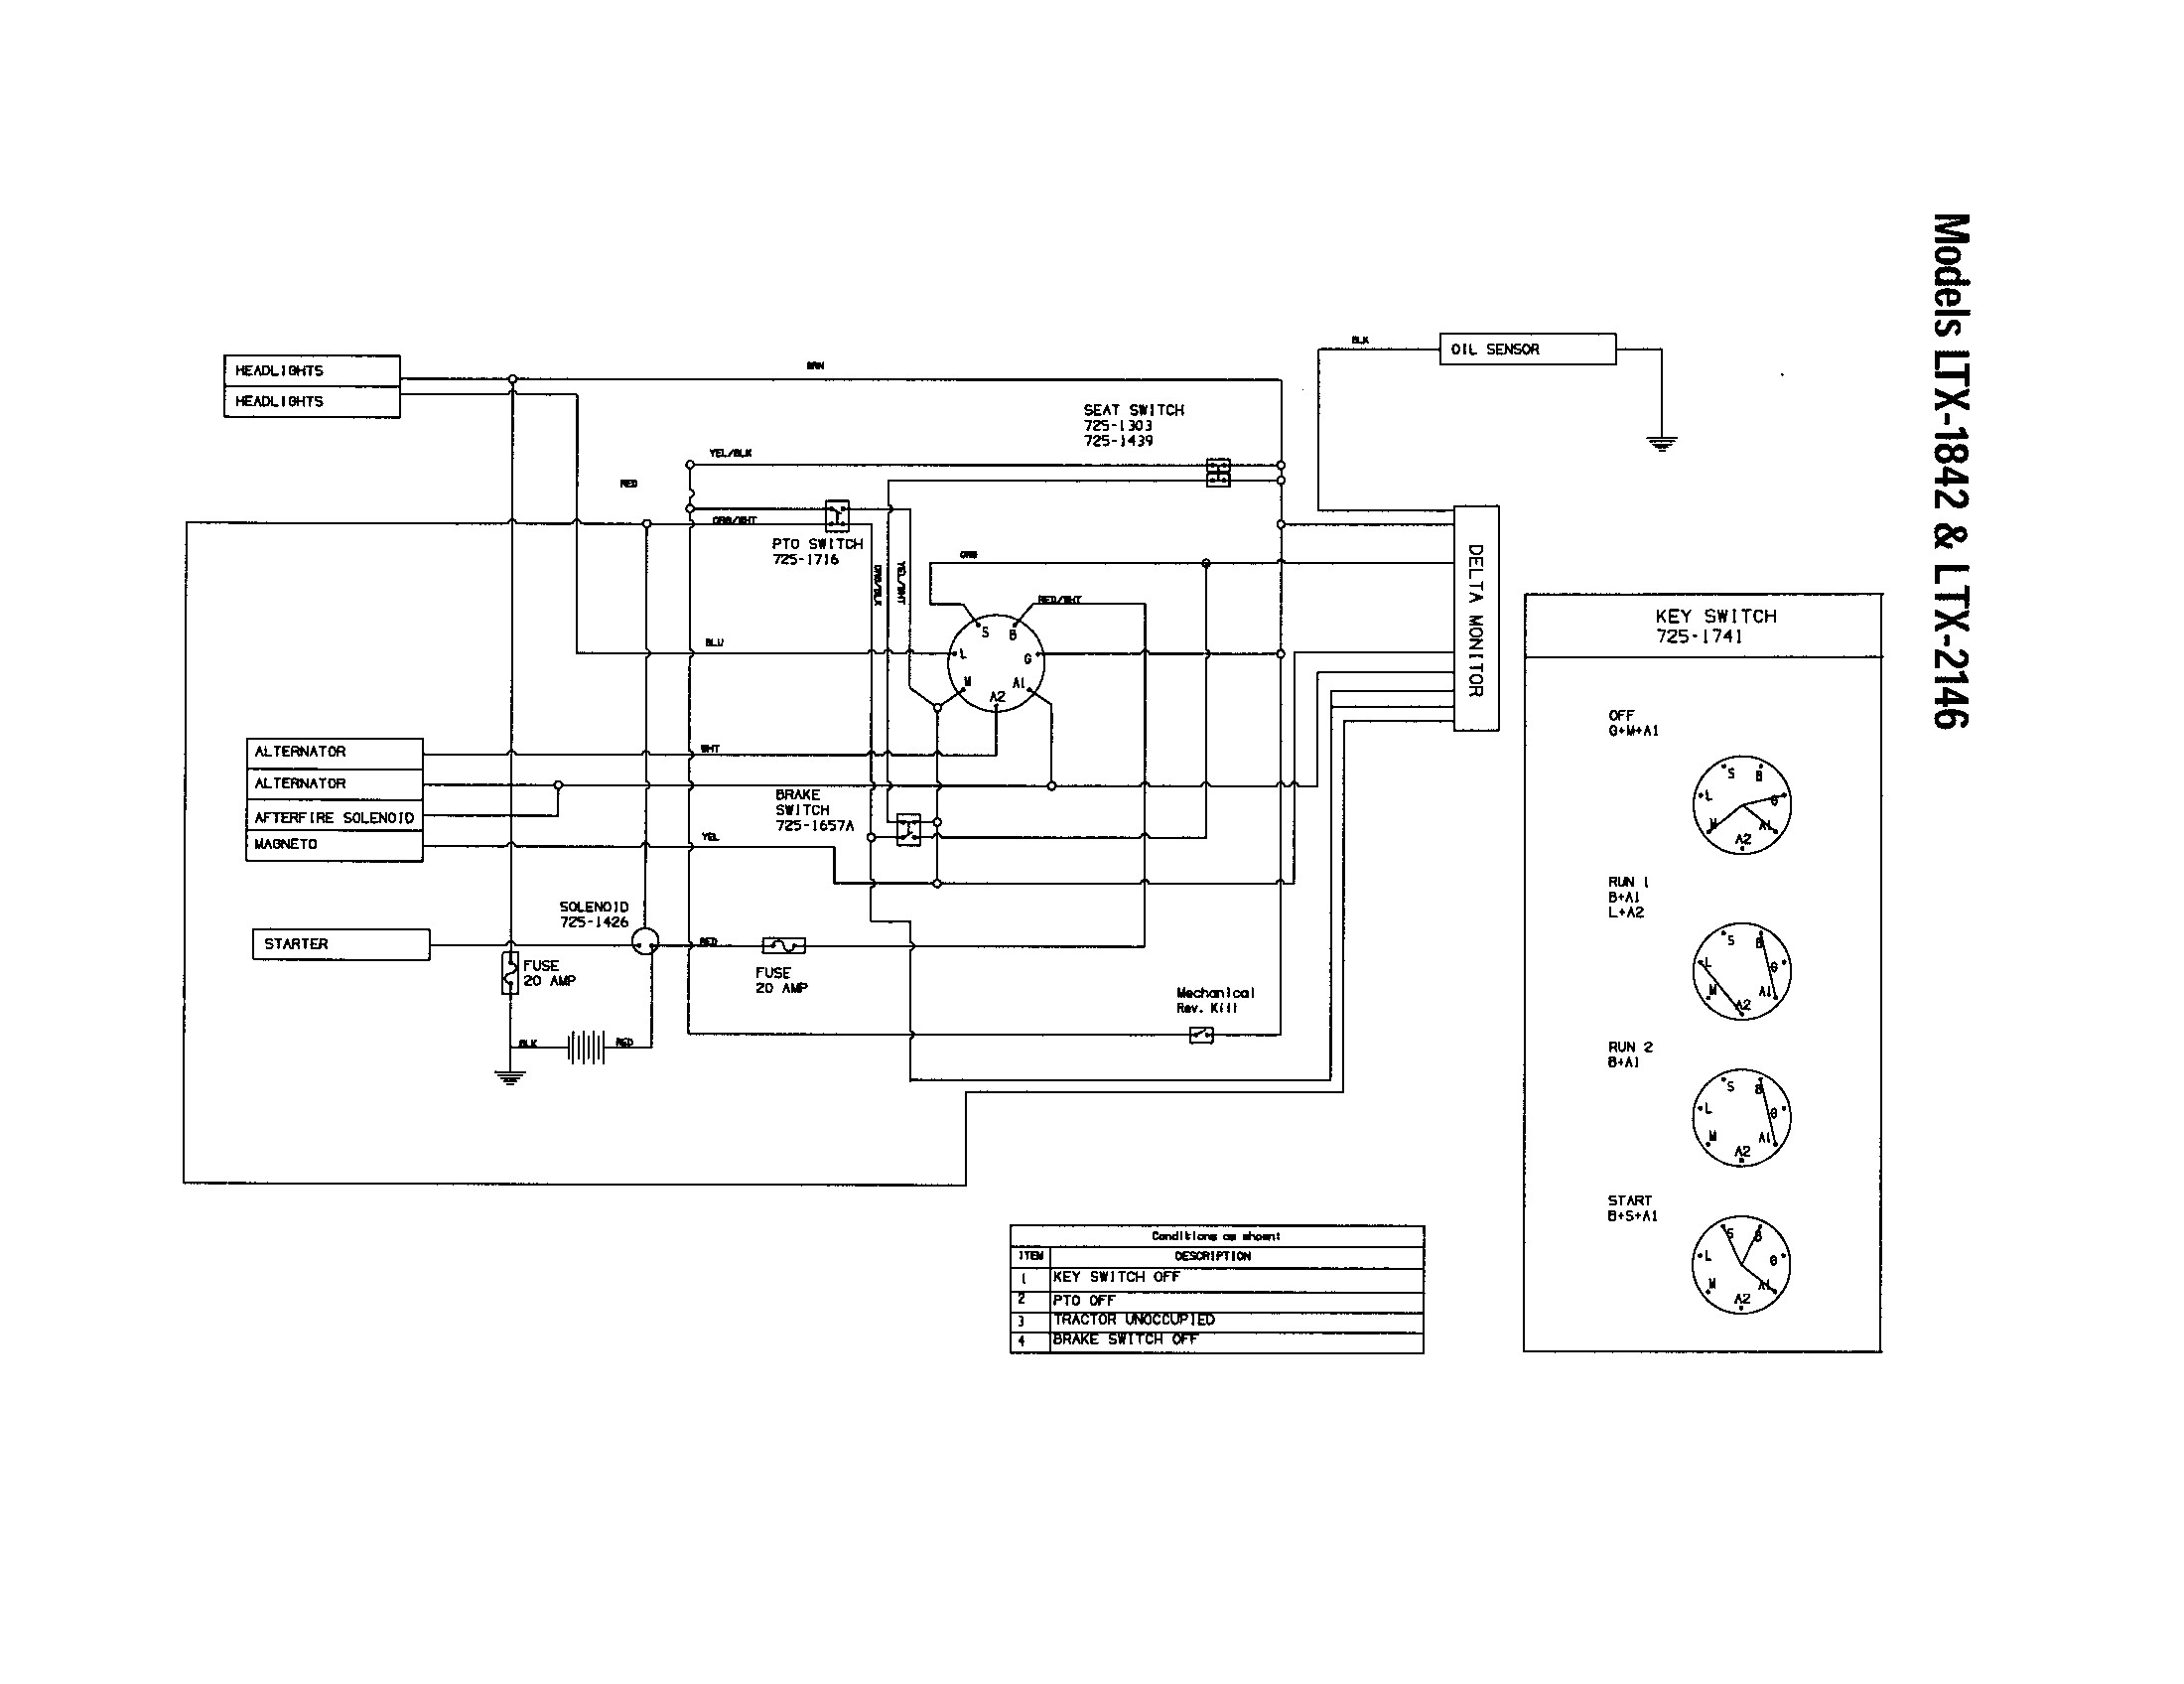 Small Engine Ignition Switch Wiring Diagram Diagram Lawn Mower Ignition Switch Diagram Of Small Engine Ignition Switch Wiring Diagram